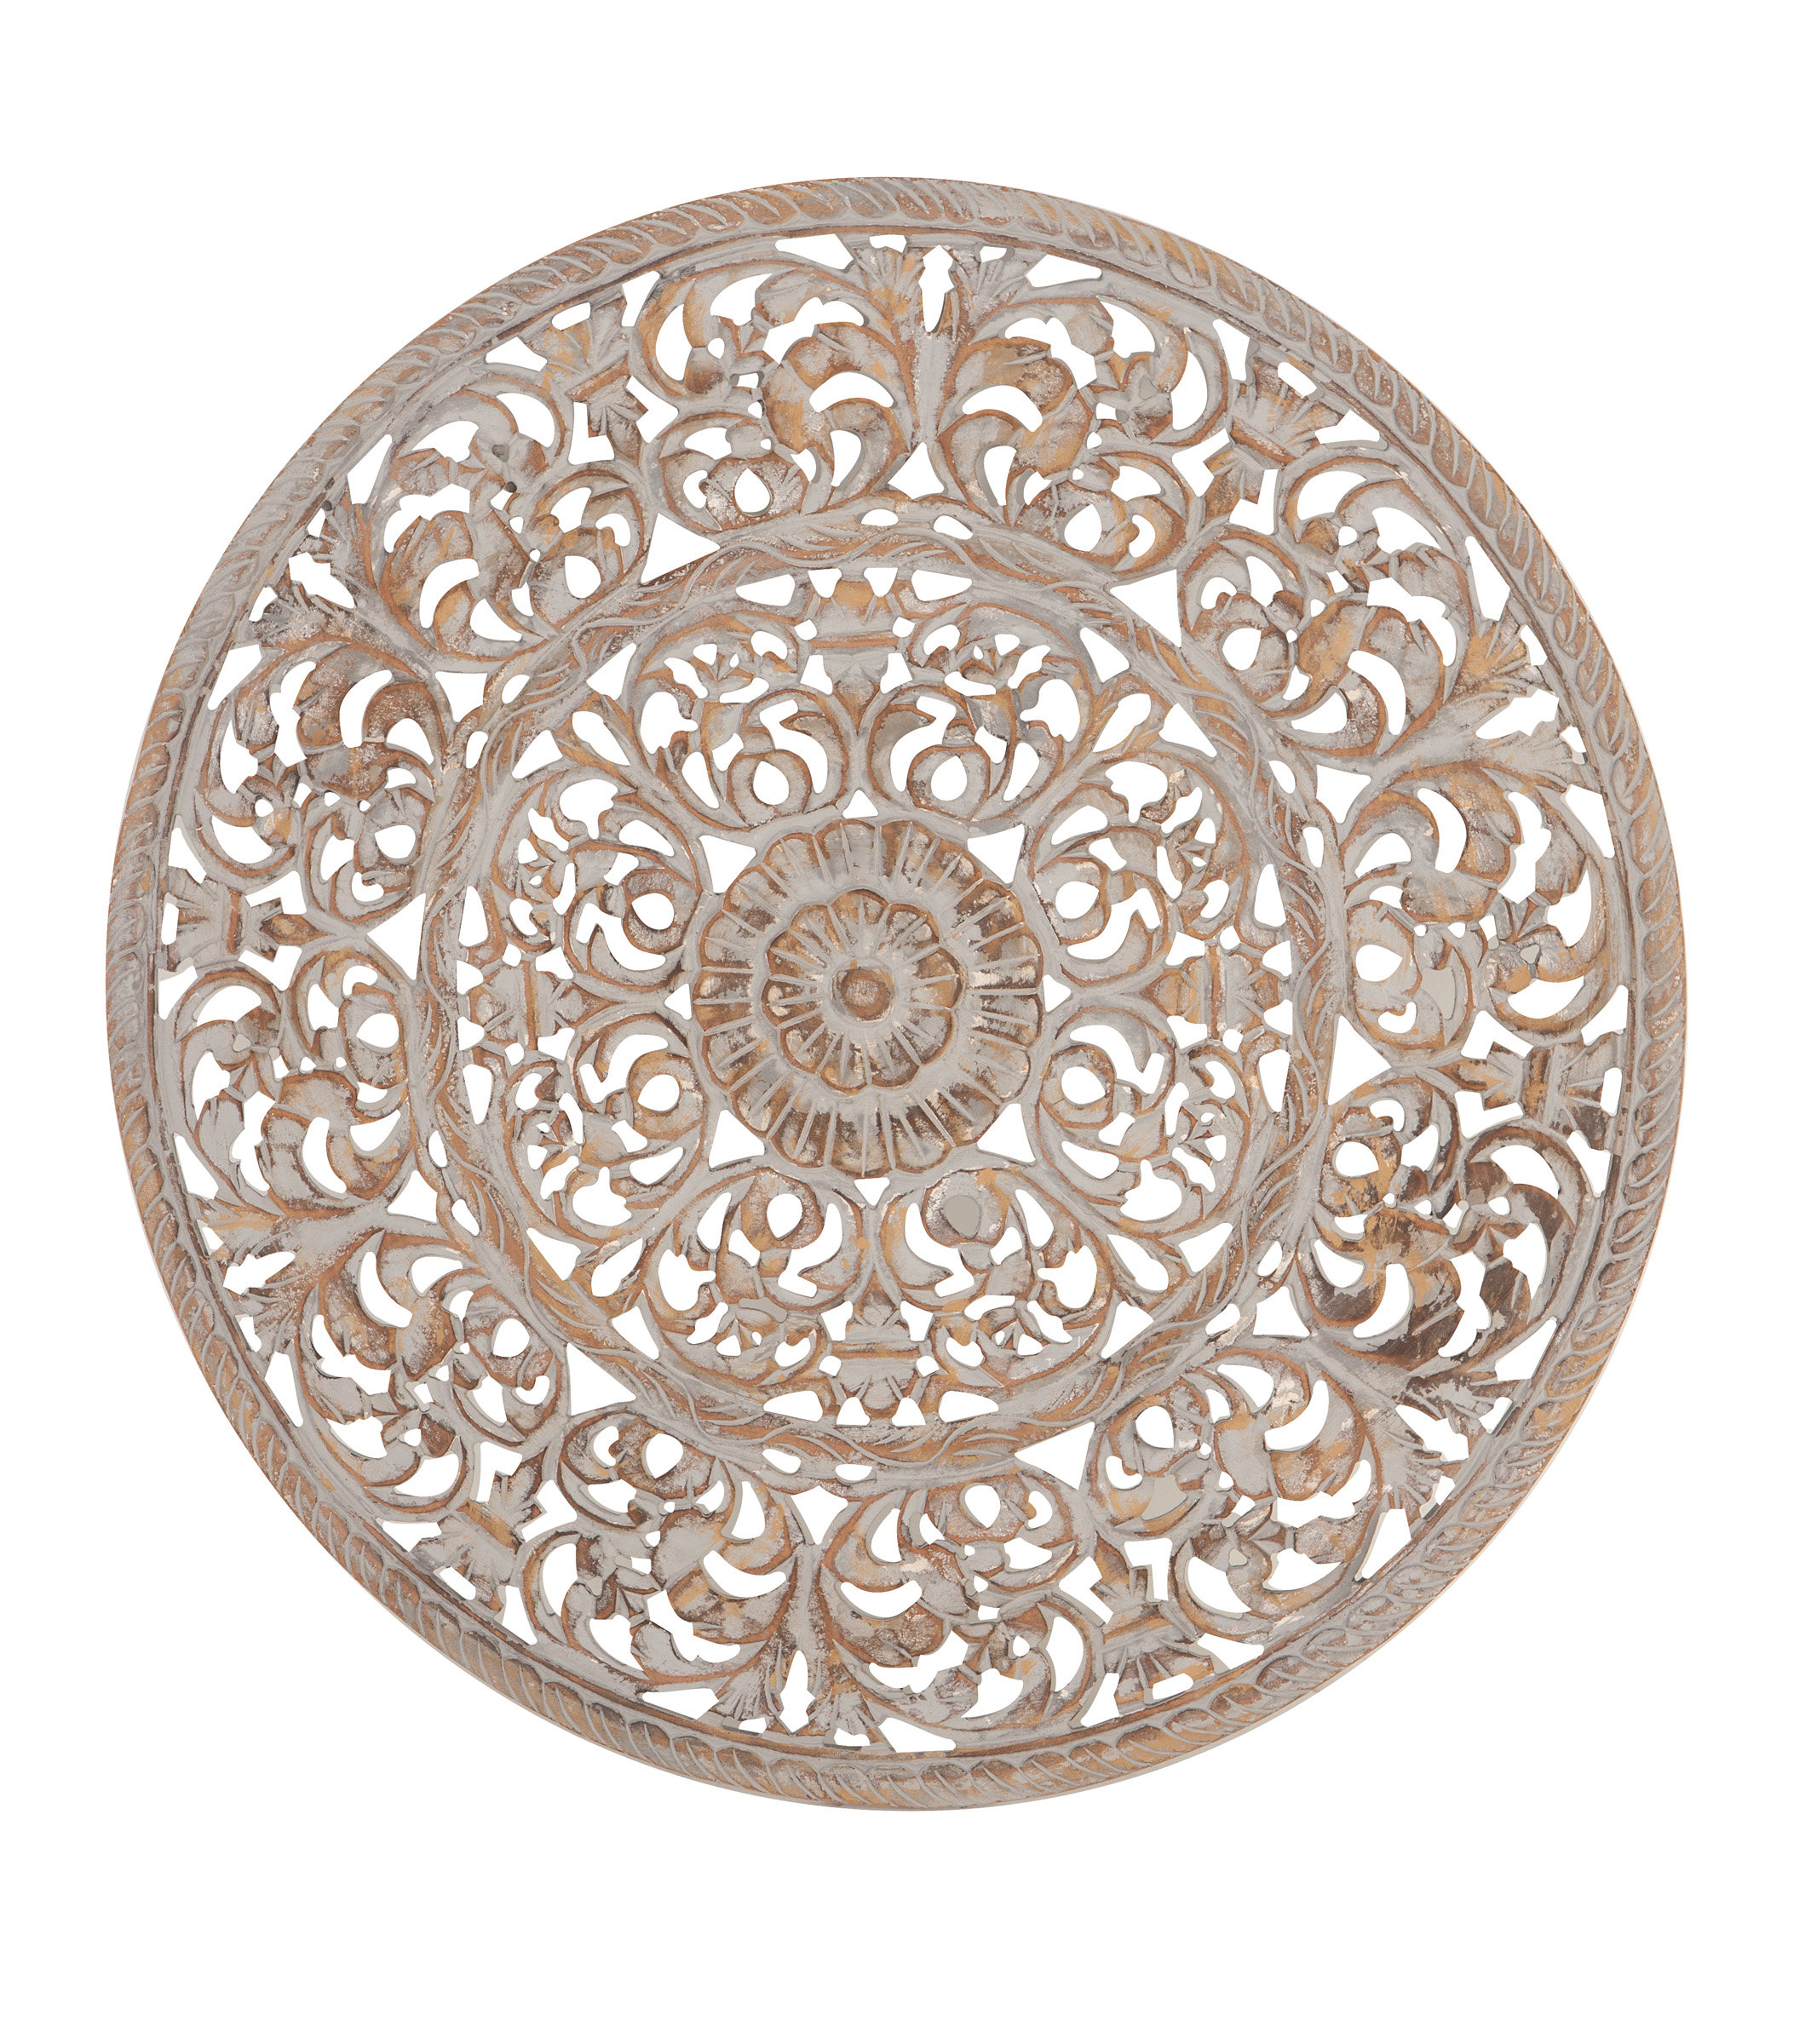 Traditional Round Ornate Carved Wall Decor pertaining to Ornate Scroll Wall Decor (Image 25 of 30)